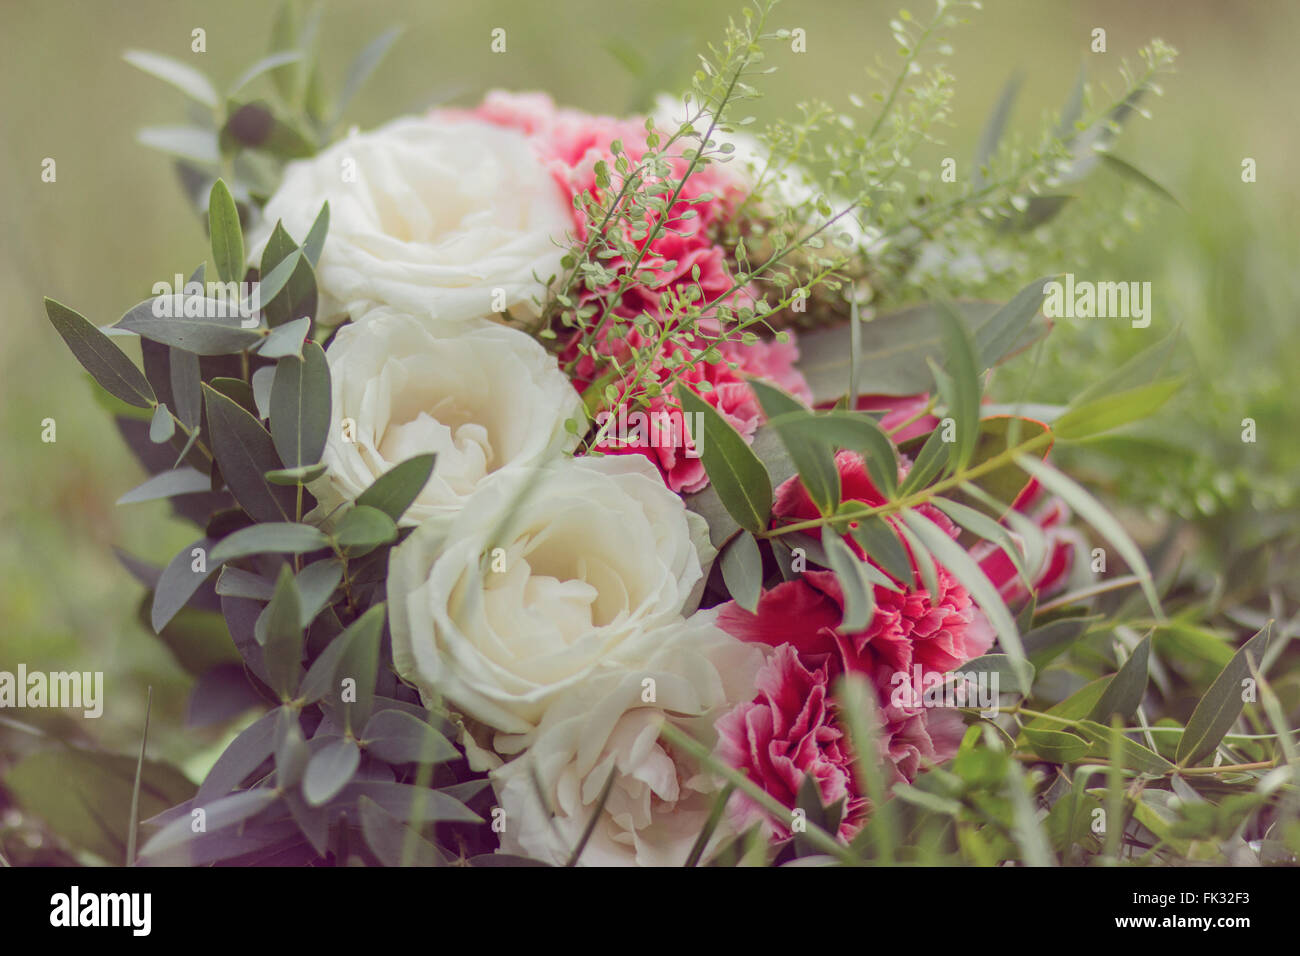 Vintage bouquet stock photos vintage bouquet stock images alamy vintage bouquet with white and marsala flowers stock image izmirmasajfo